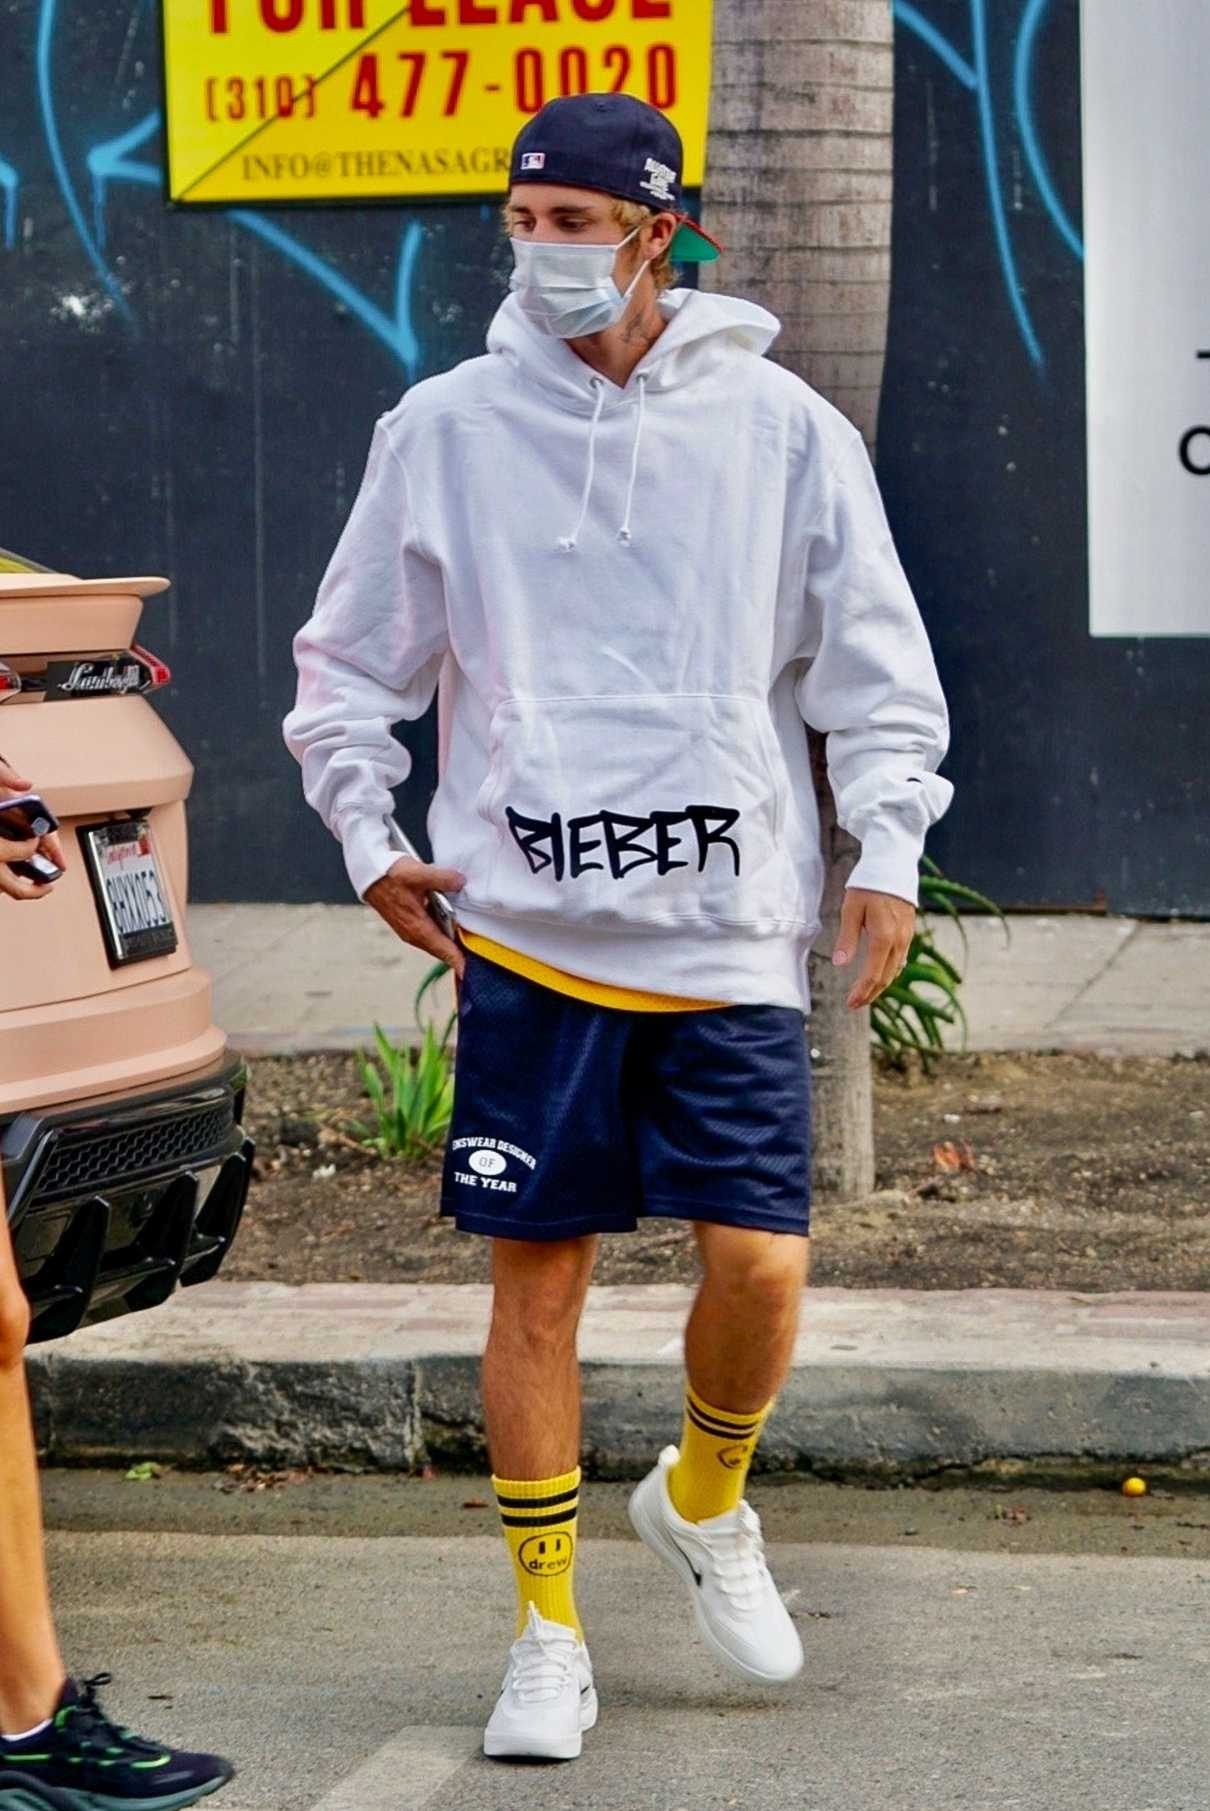 Justin Bieber in a White Hoody